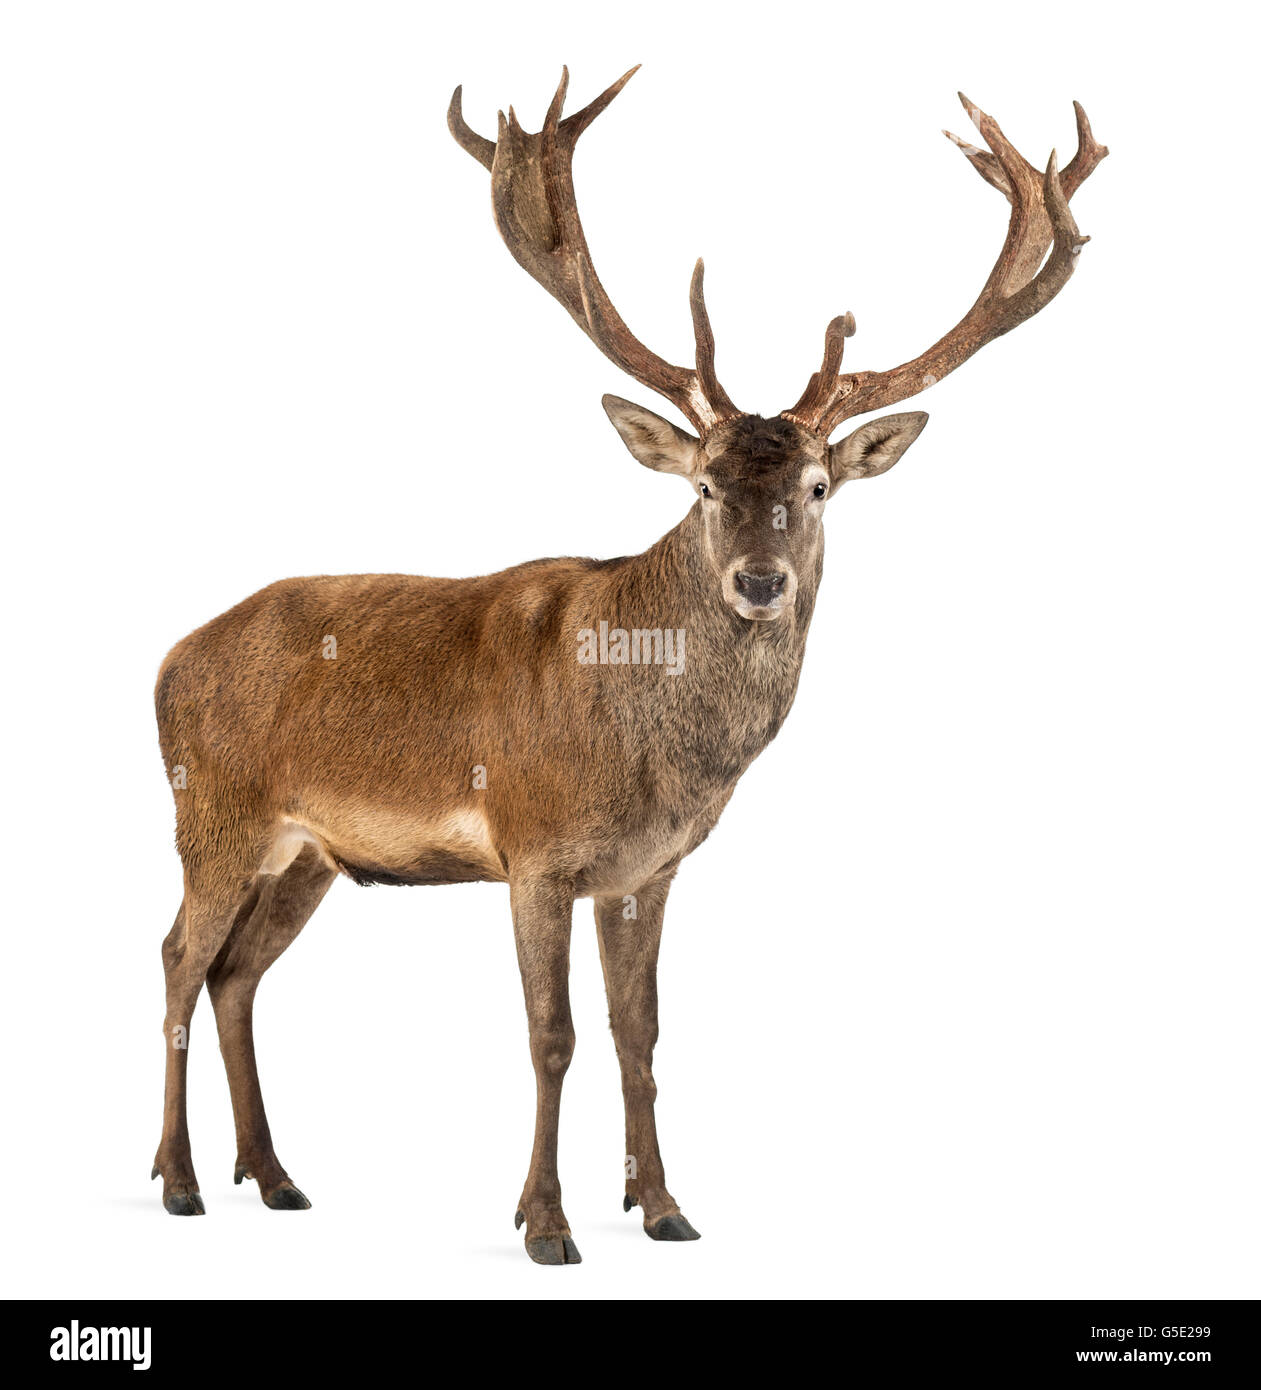 Red deer stag in front of a white background - Stock Image